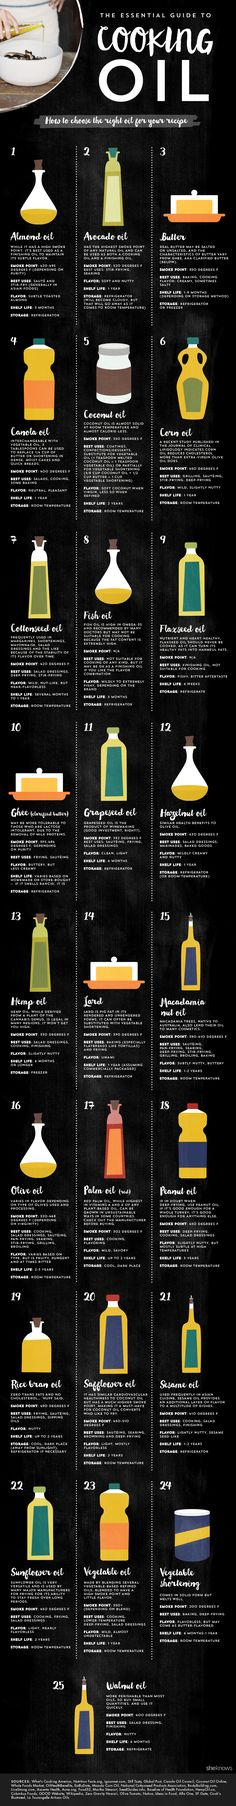 The essential guide to cooking oil infographic. Tips on how to choose the right cooking oil for your recipe.